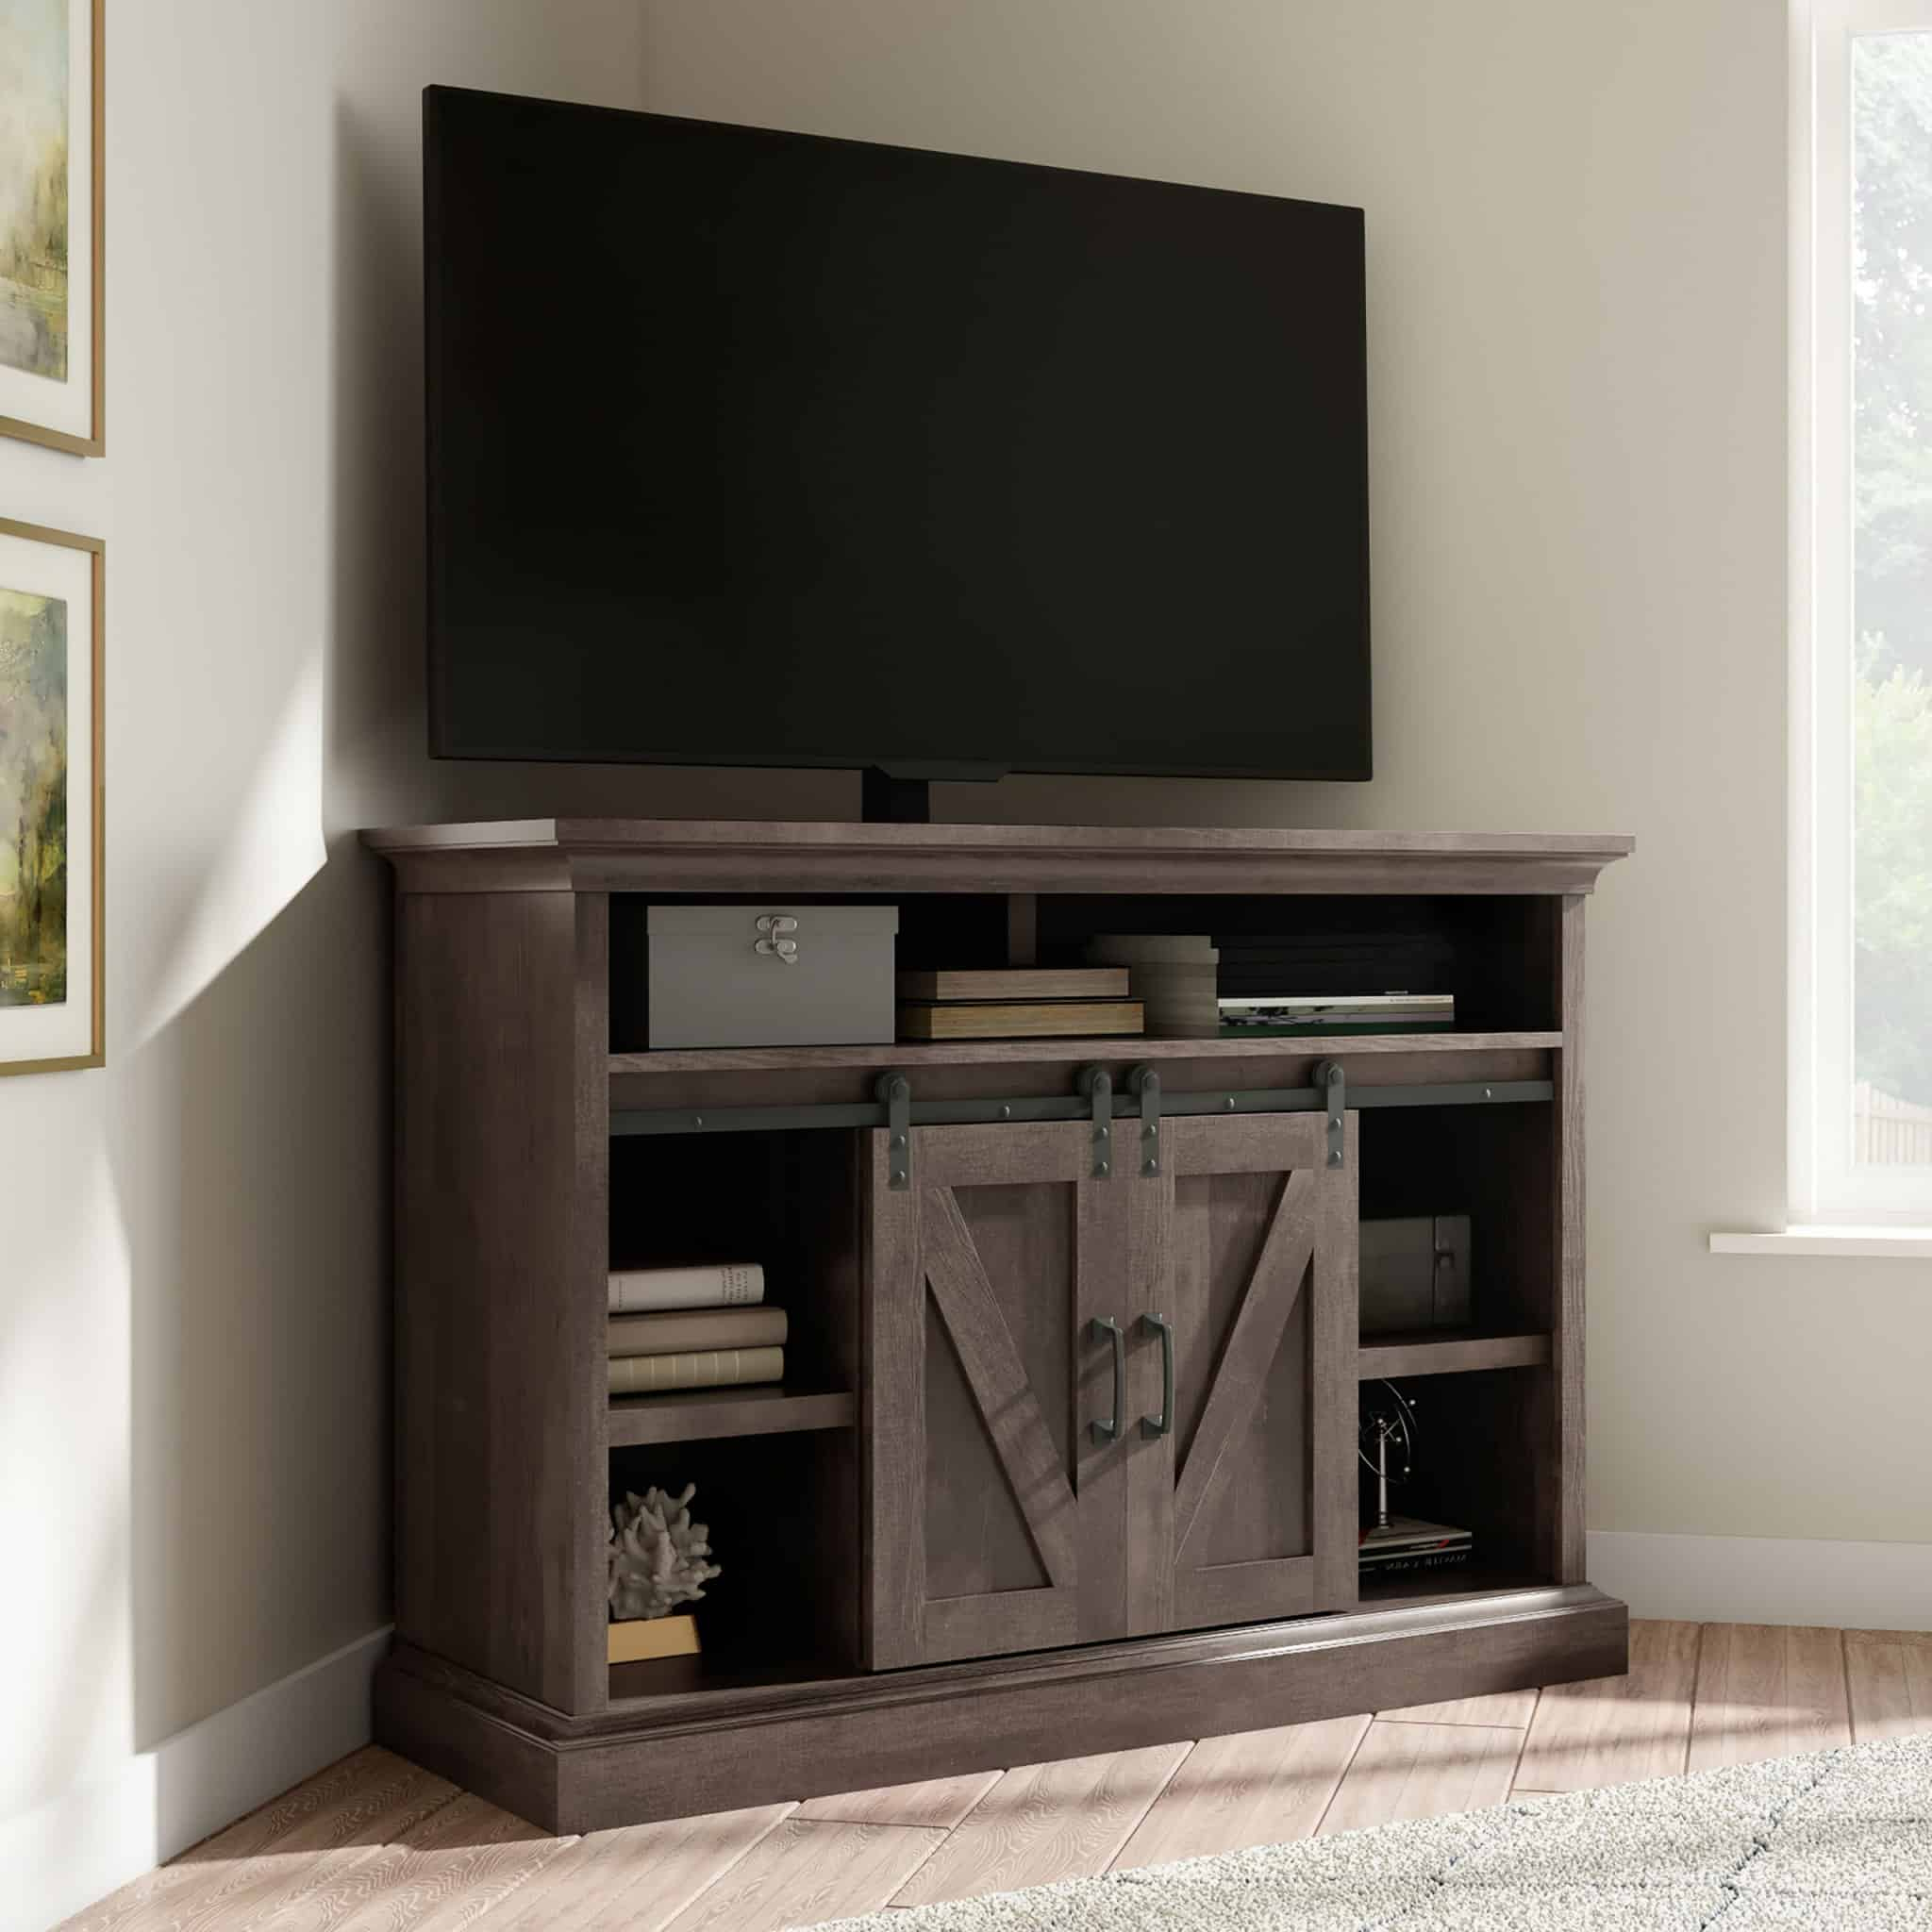 Most Popular Whalen Payton 3 In 1 Flat Panel Tv Stands With Multiple Finishes With Regard To Payton 3 In 1 Tv Stand – Whalen (View 4 of 10)